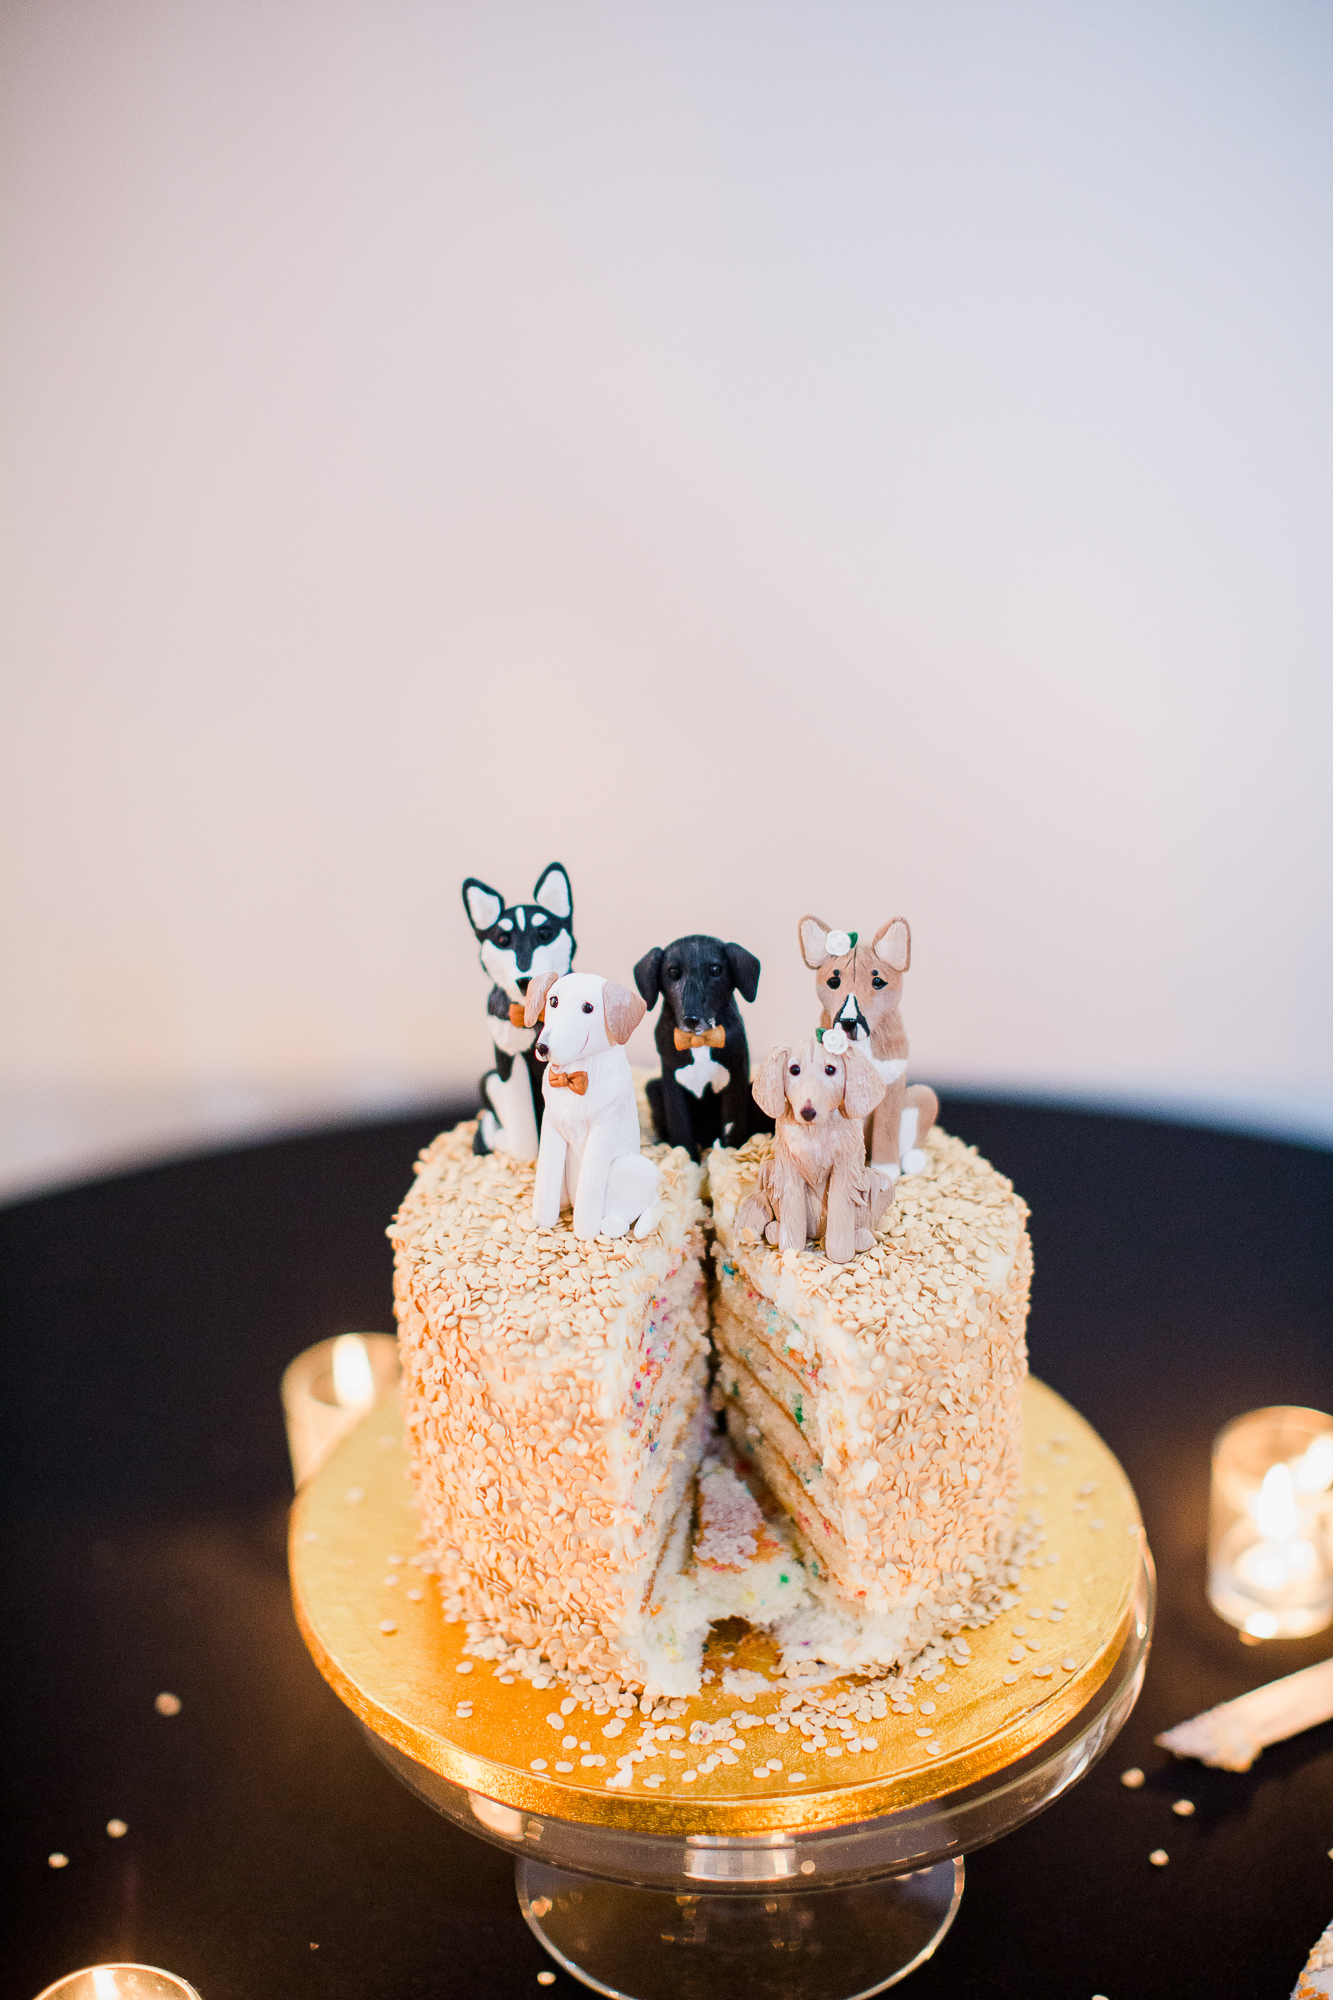 Small wedding cake design with custom cake toppers   Nashville Bride Guide